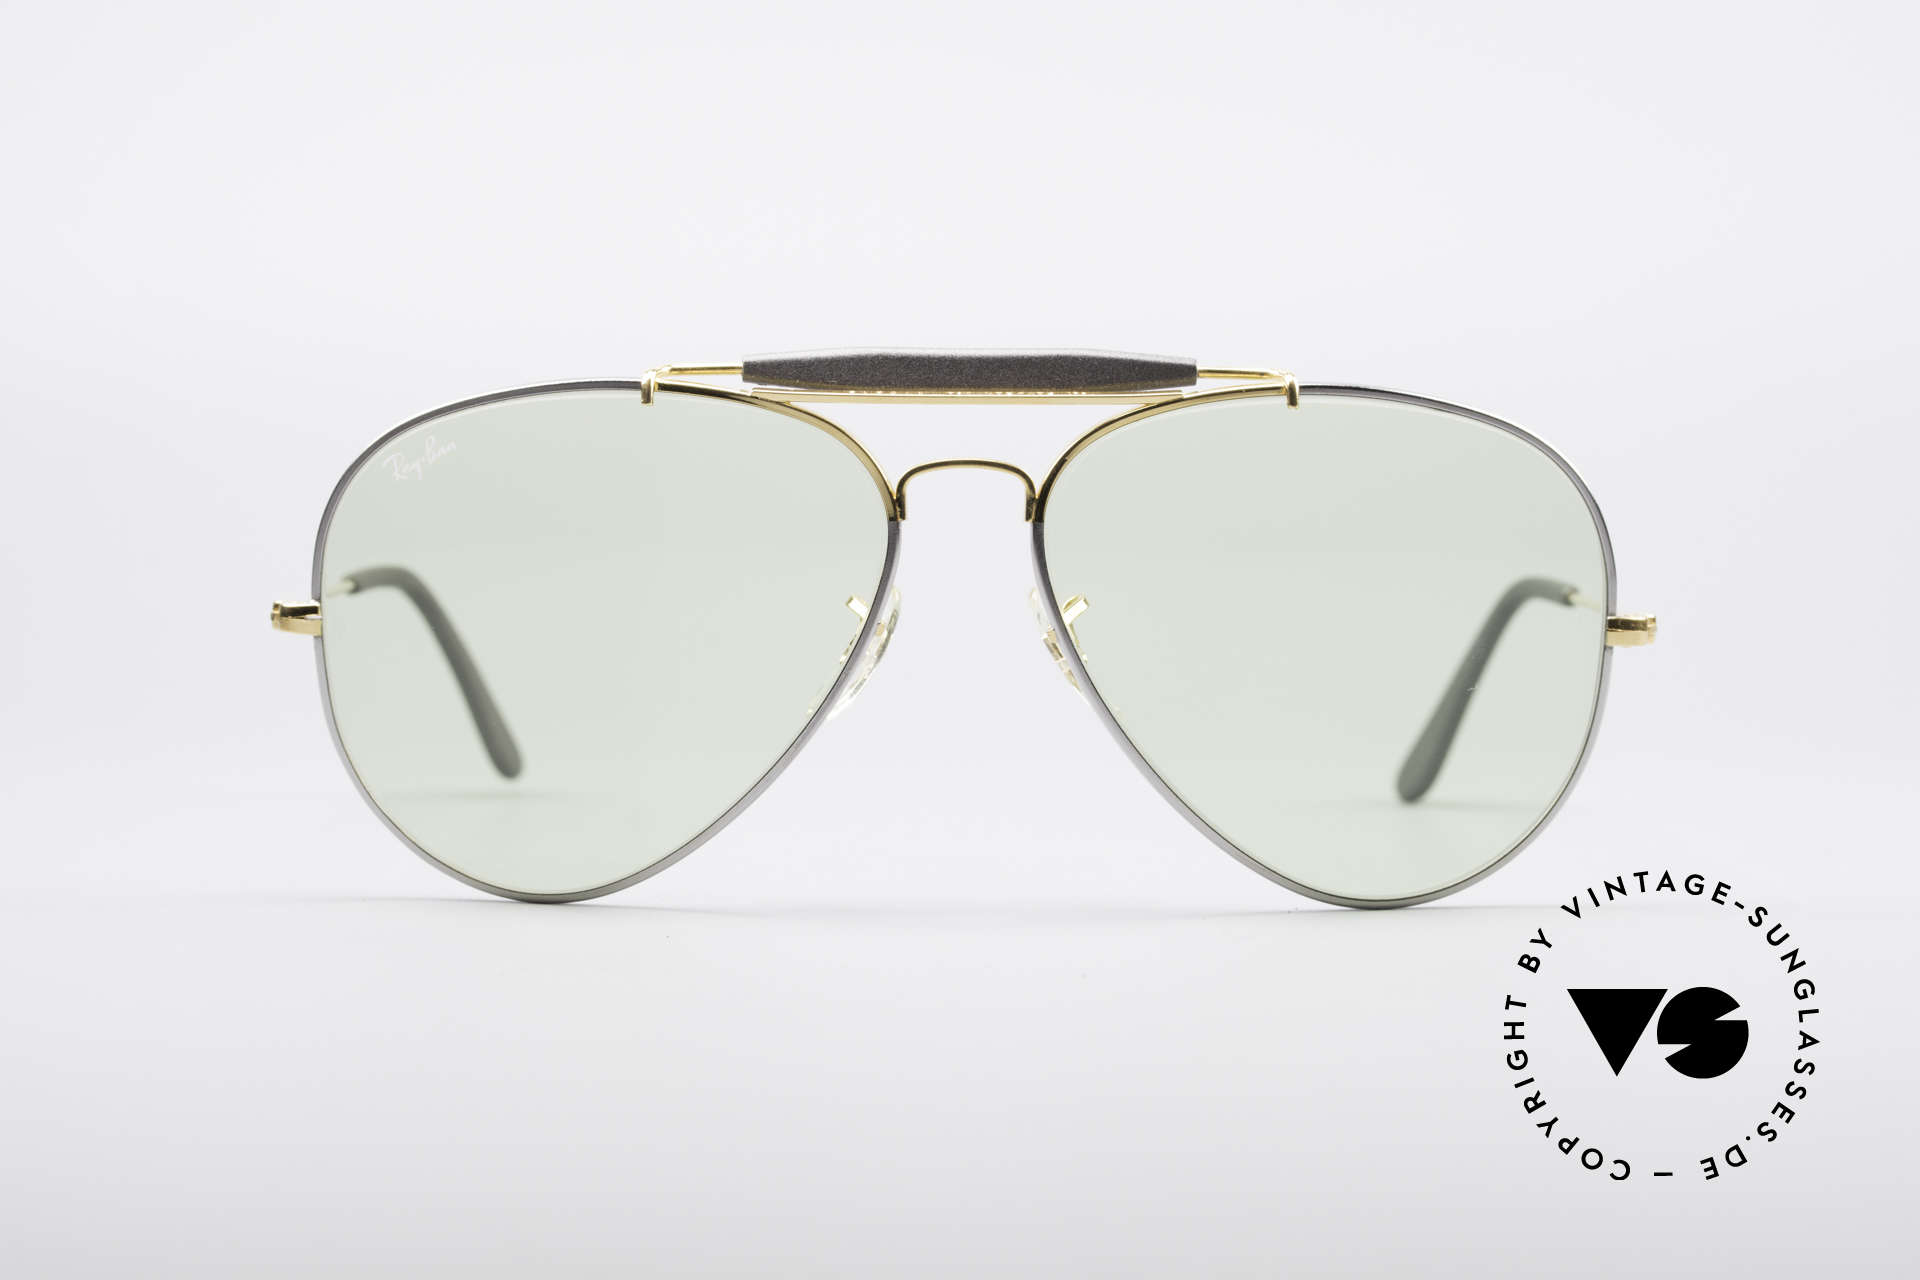 Ray Ban Outdoorsman II Precious Metals Changeable, rare 'Precious Metals' special edition; 62mm size, Made for Men